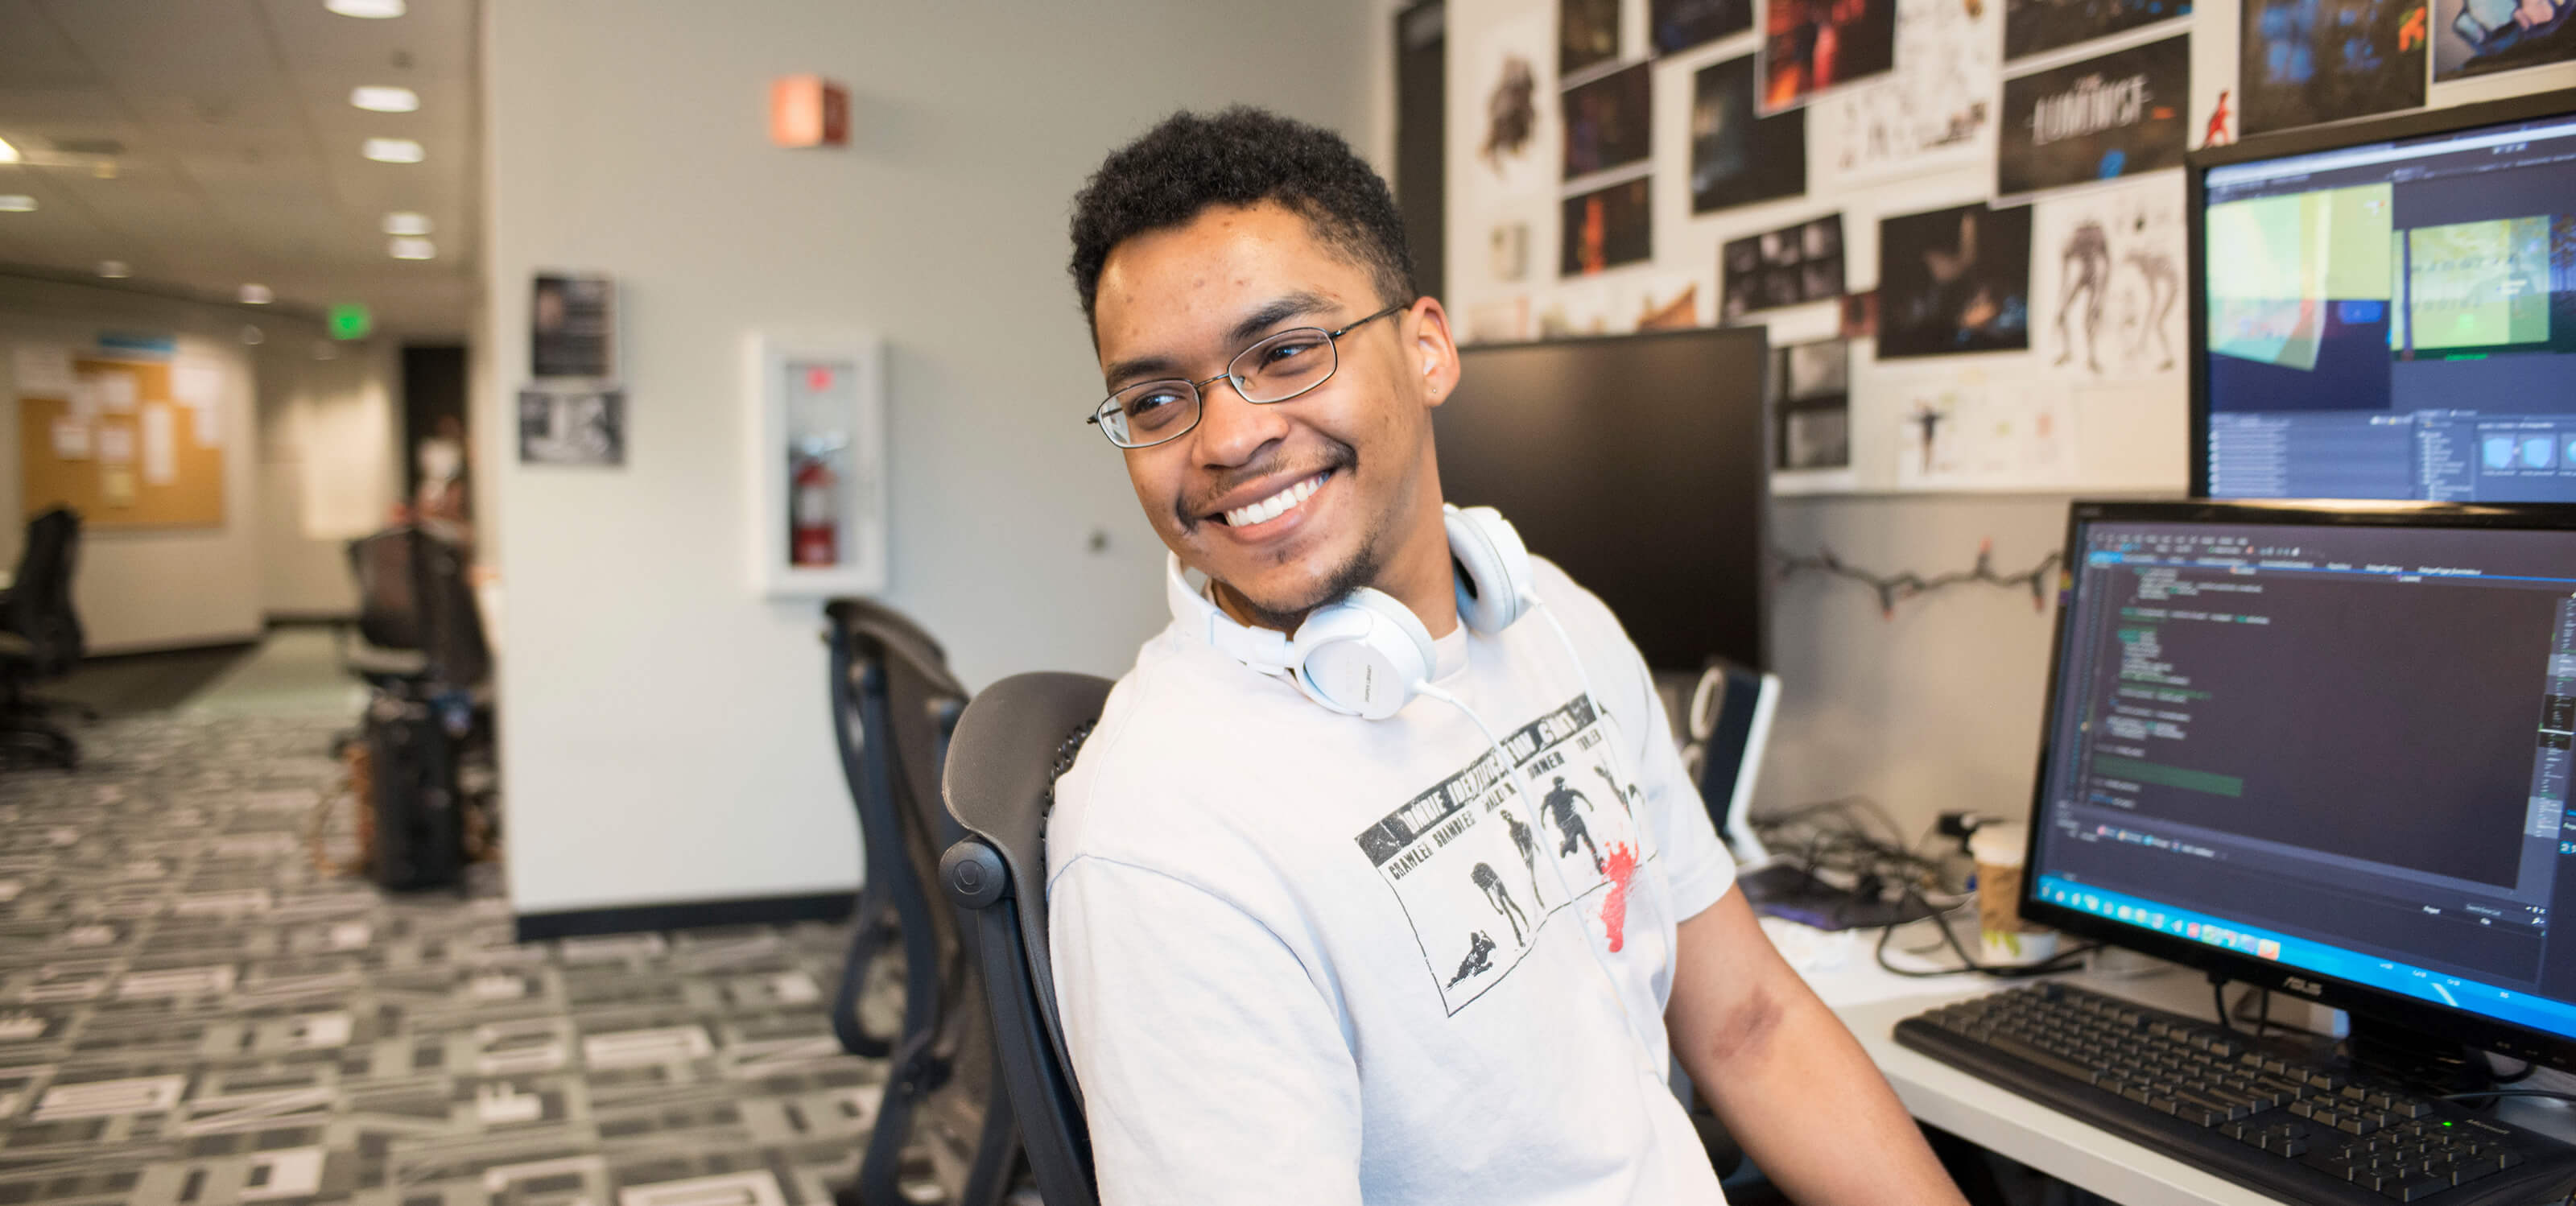 A DigiPen student smiling as he leans away from a computer screen